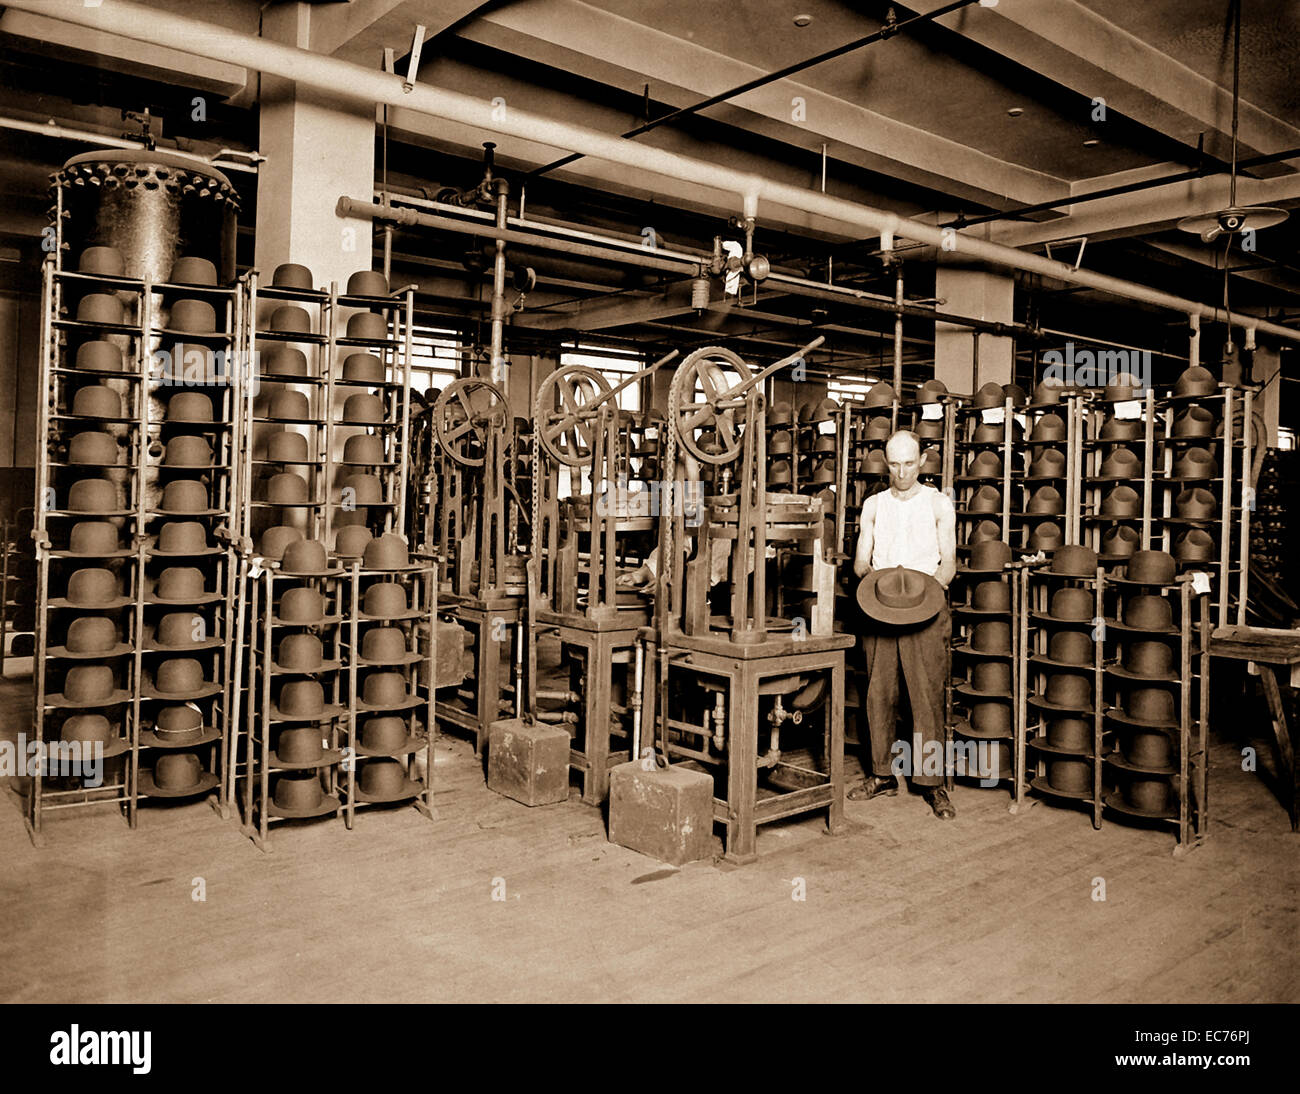 Hats manufactured for American soldiers by John B. Stetson Co., Phila., Pa.  Pressing Army service hats.  Ca.  1917 - Stock Image